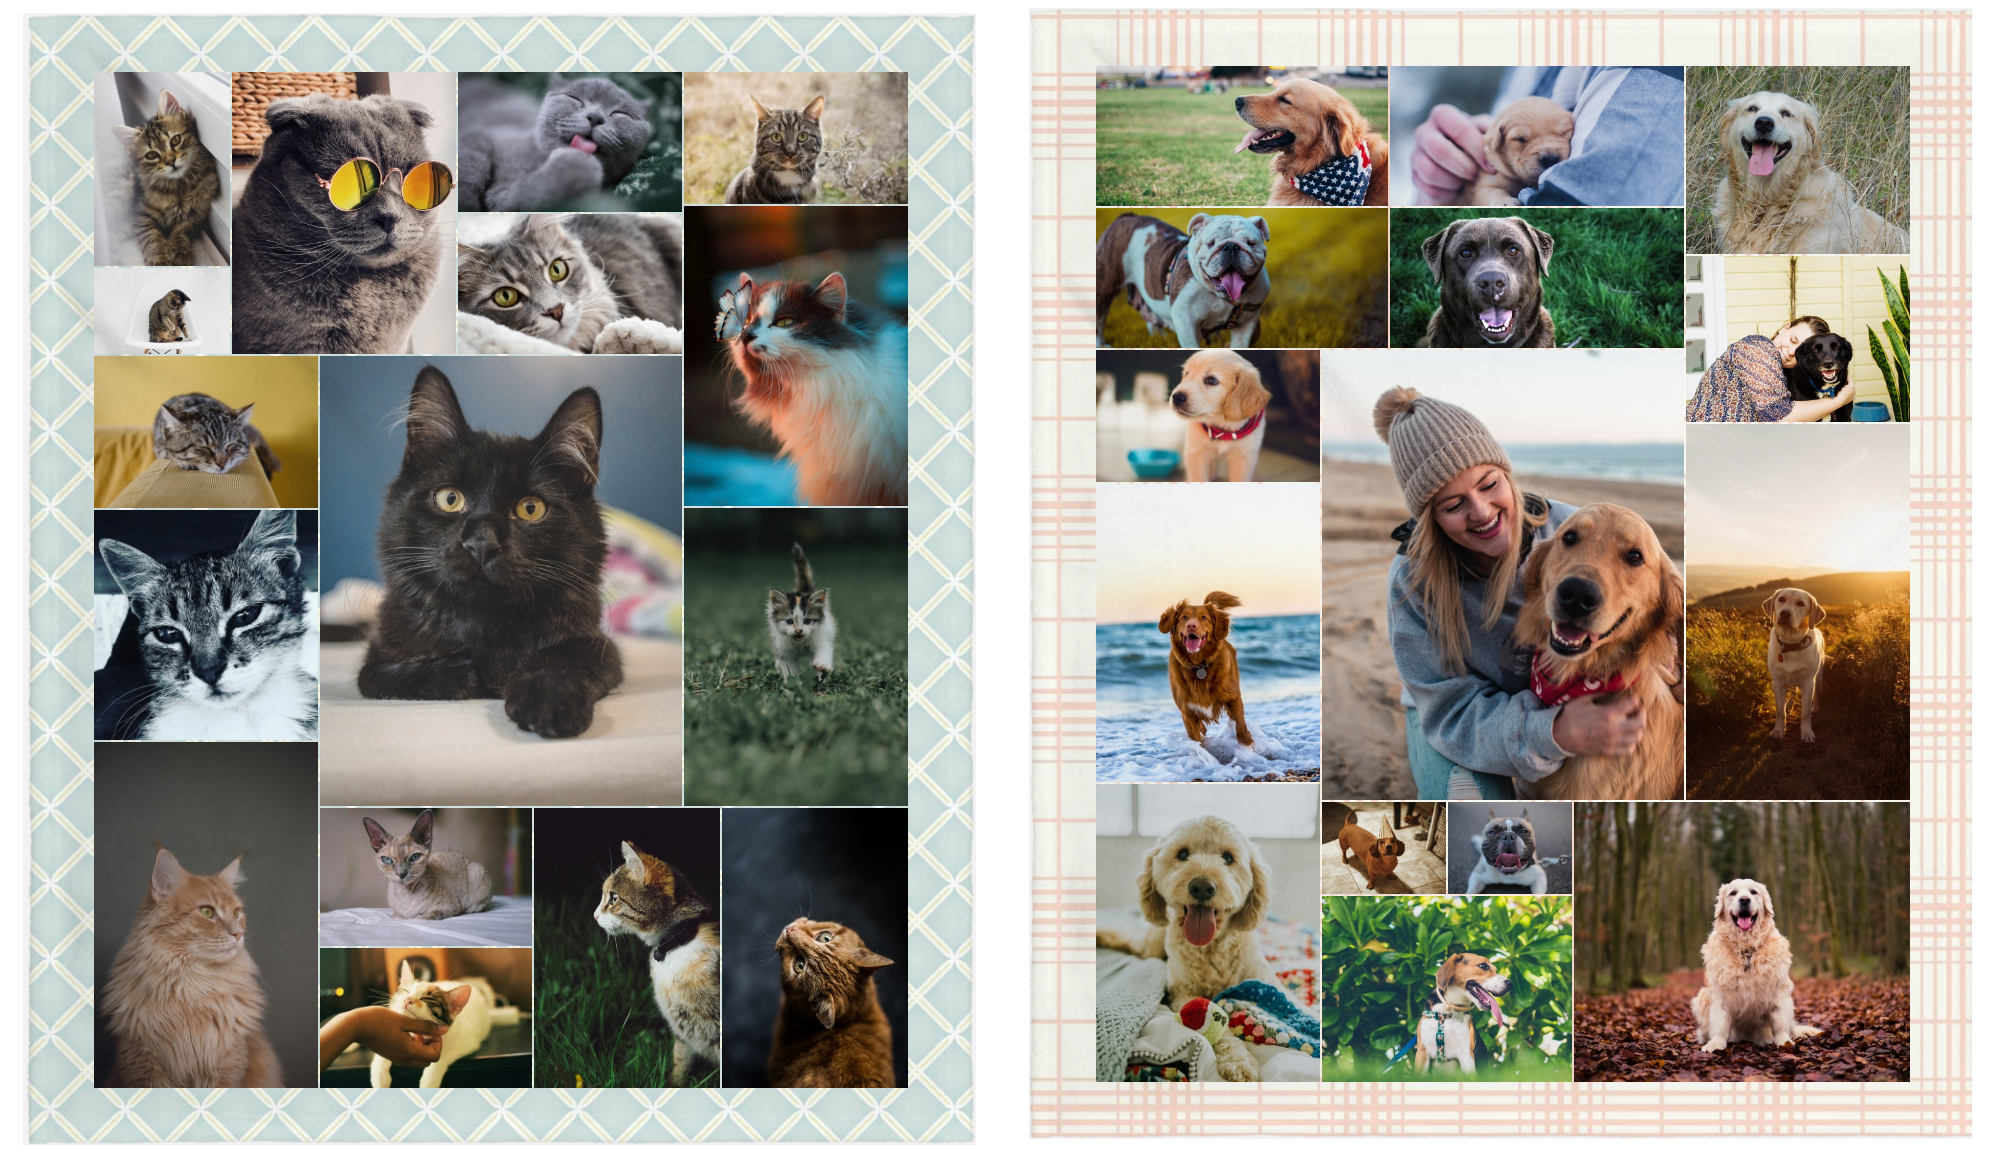 Collage of cat and dog photos